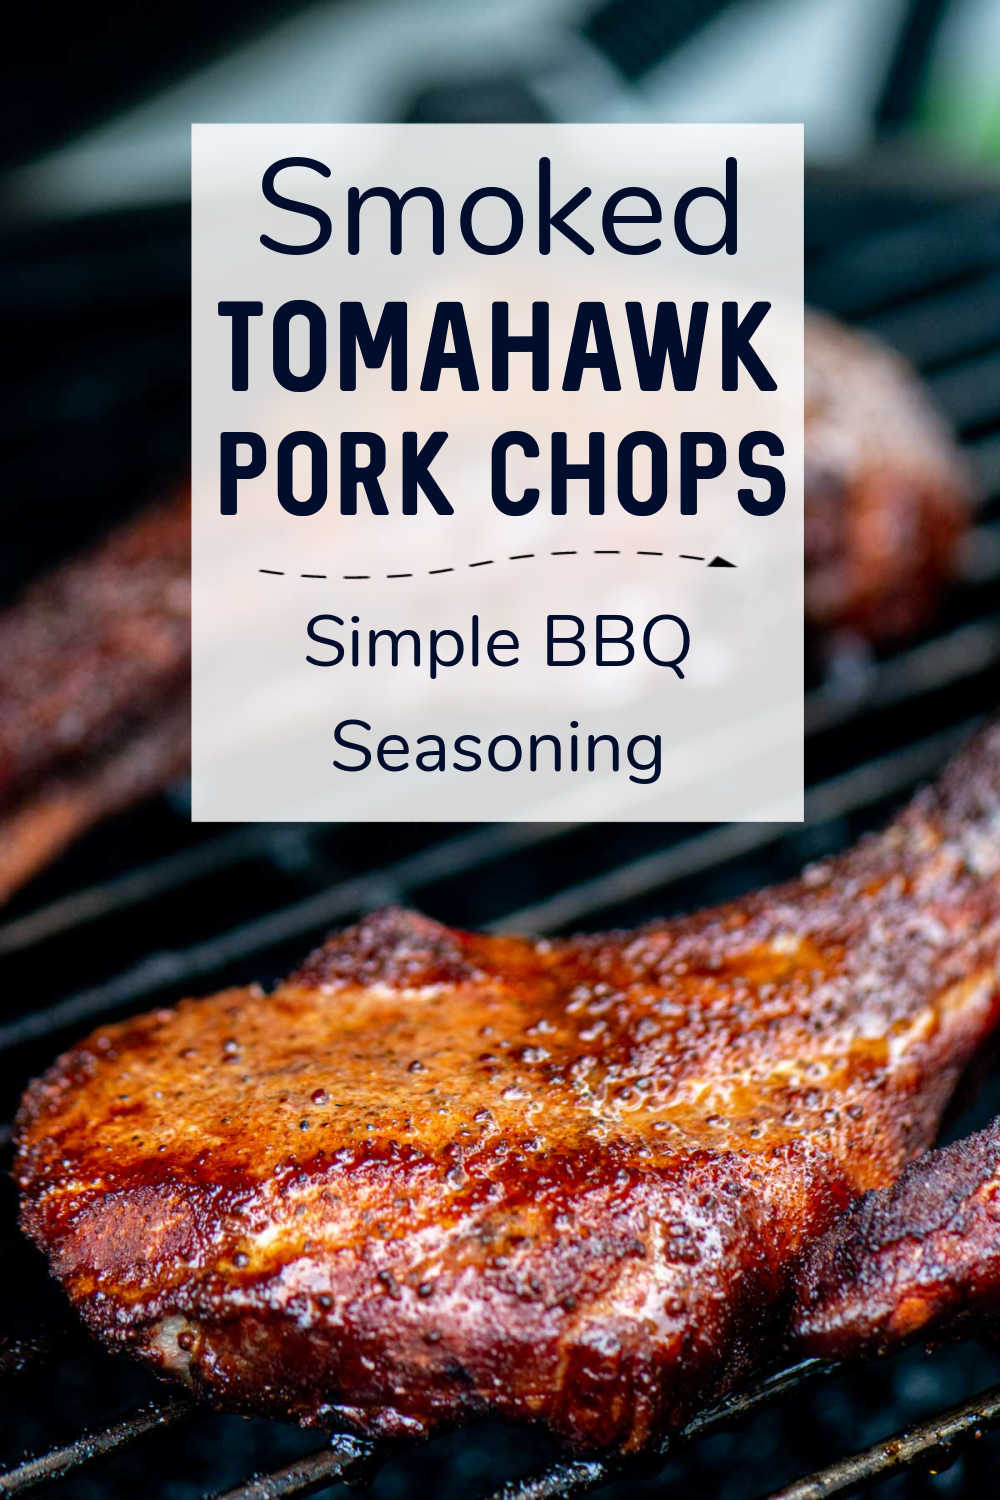 Smoked Tomahawk Pork Chops